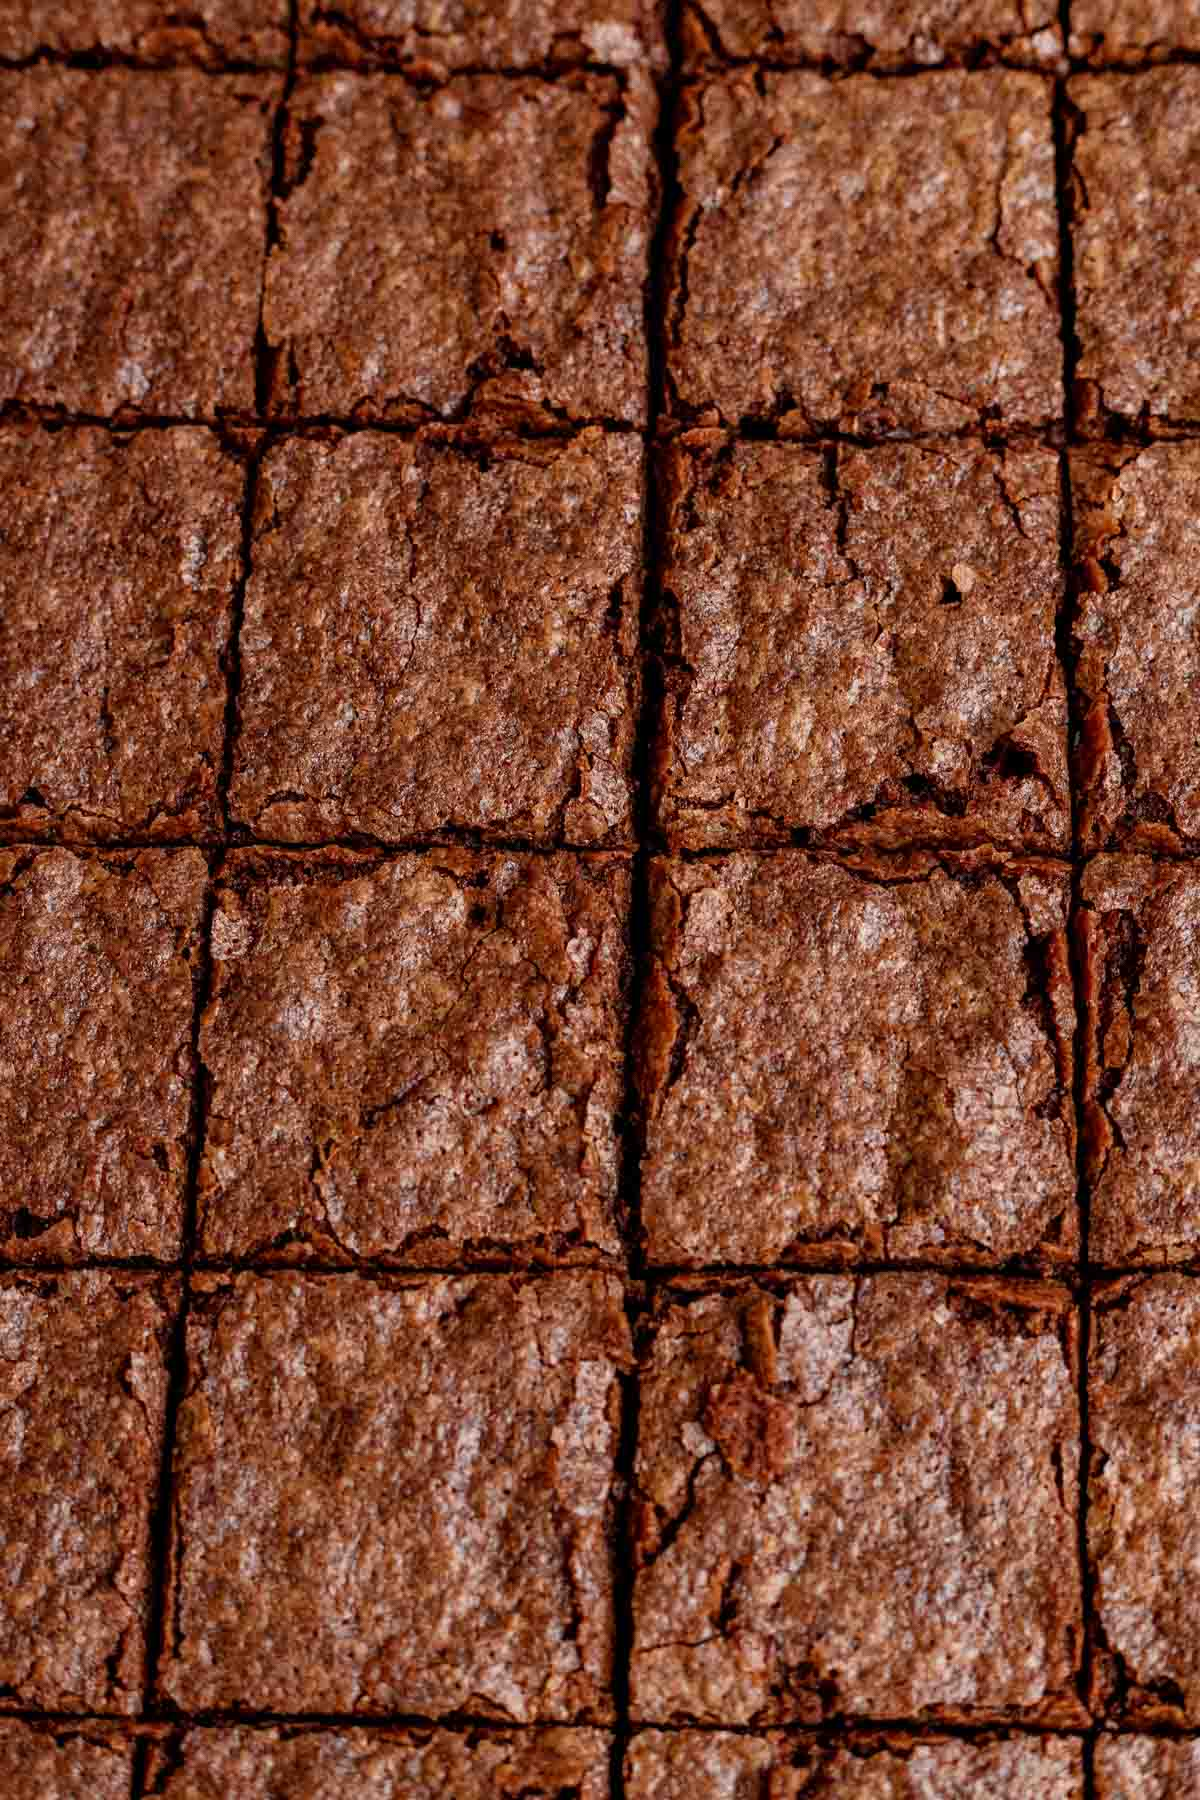 Fudgy Brownies sliced on parchment